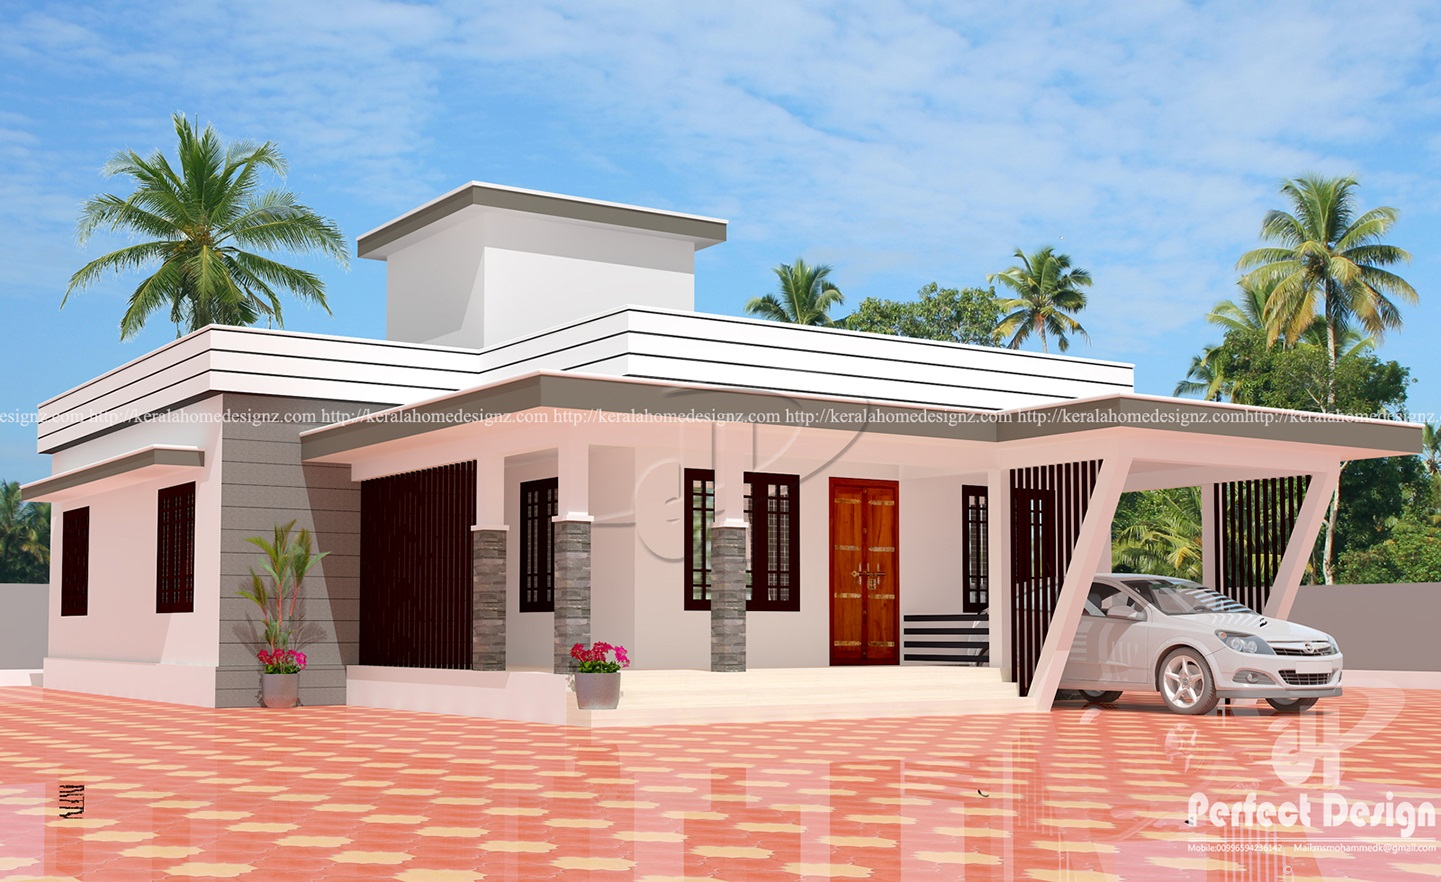 3 bedroom modern flat roof house layout kerala home design for Modern 3 bedroom house plans and designs